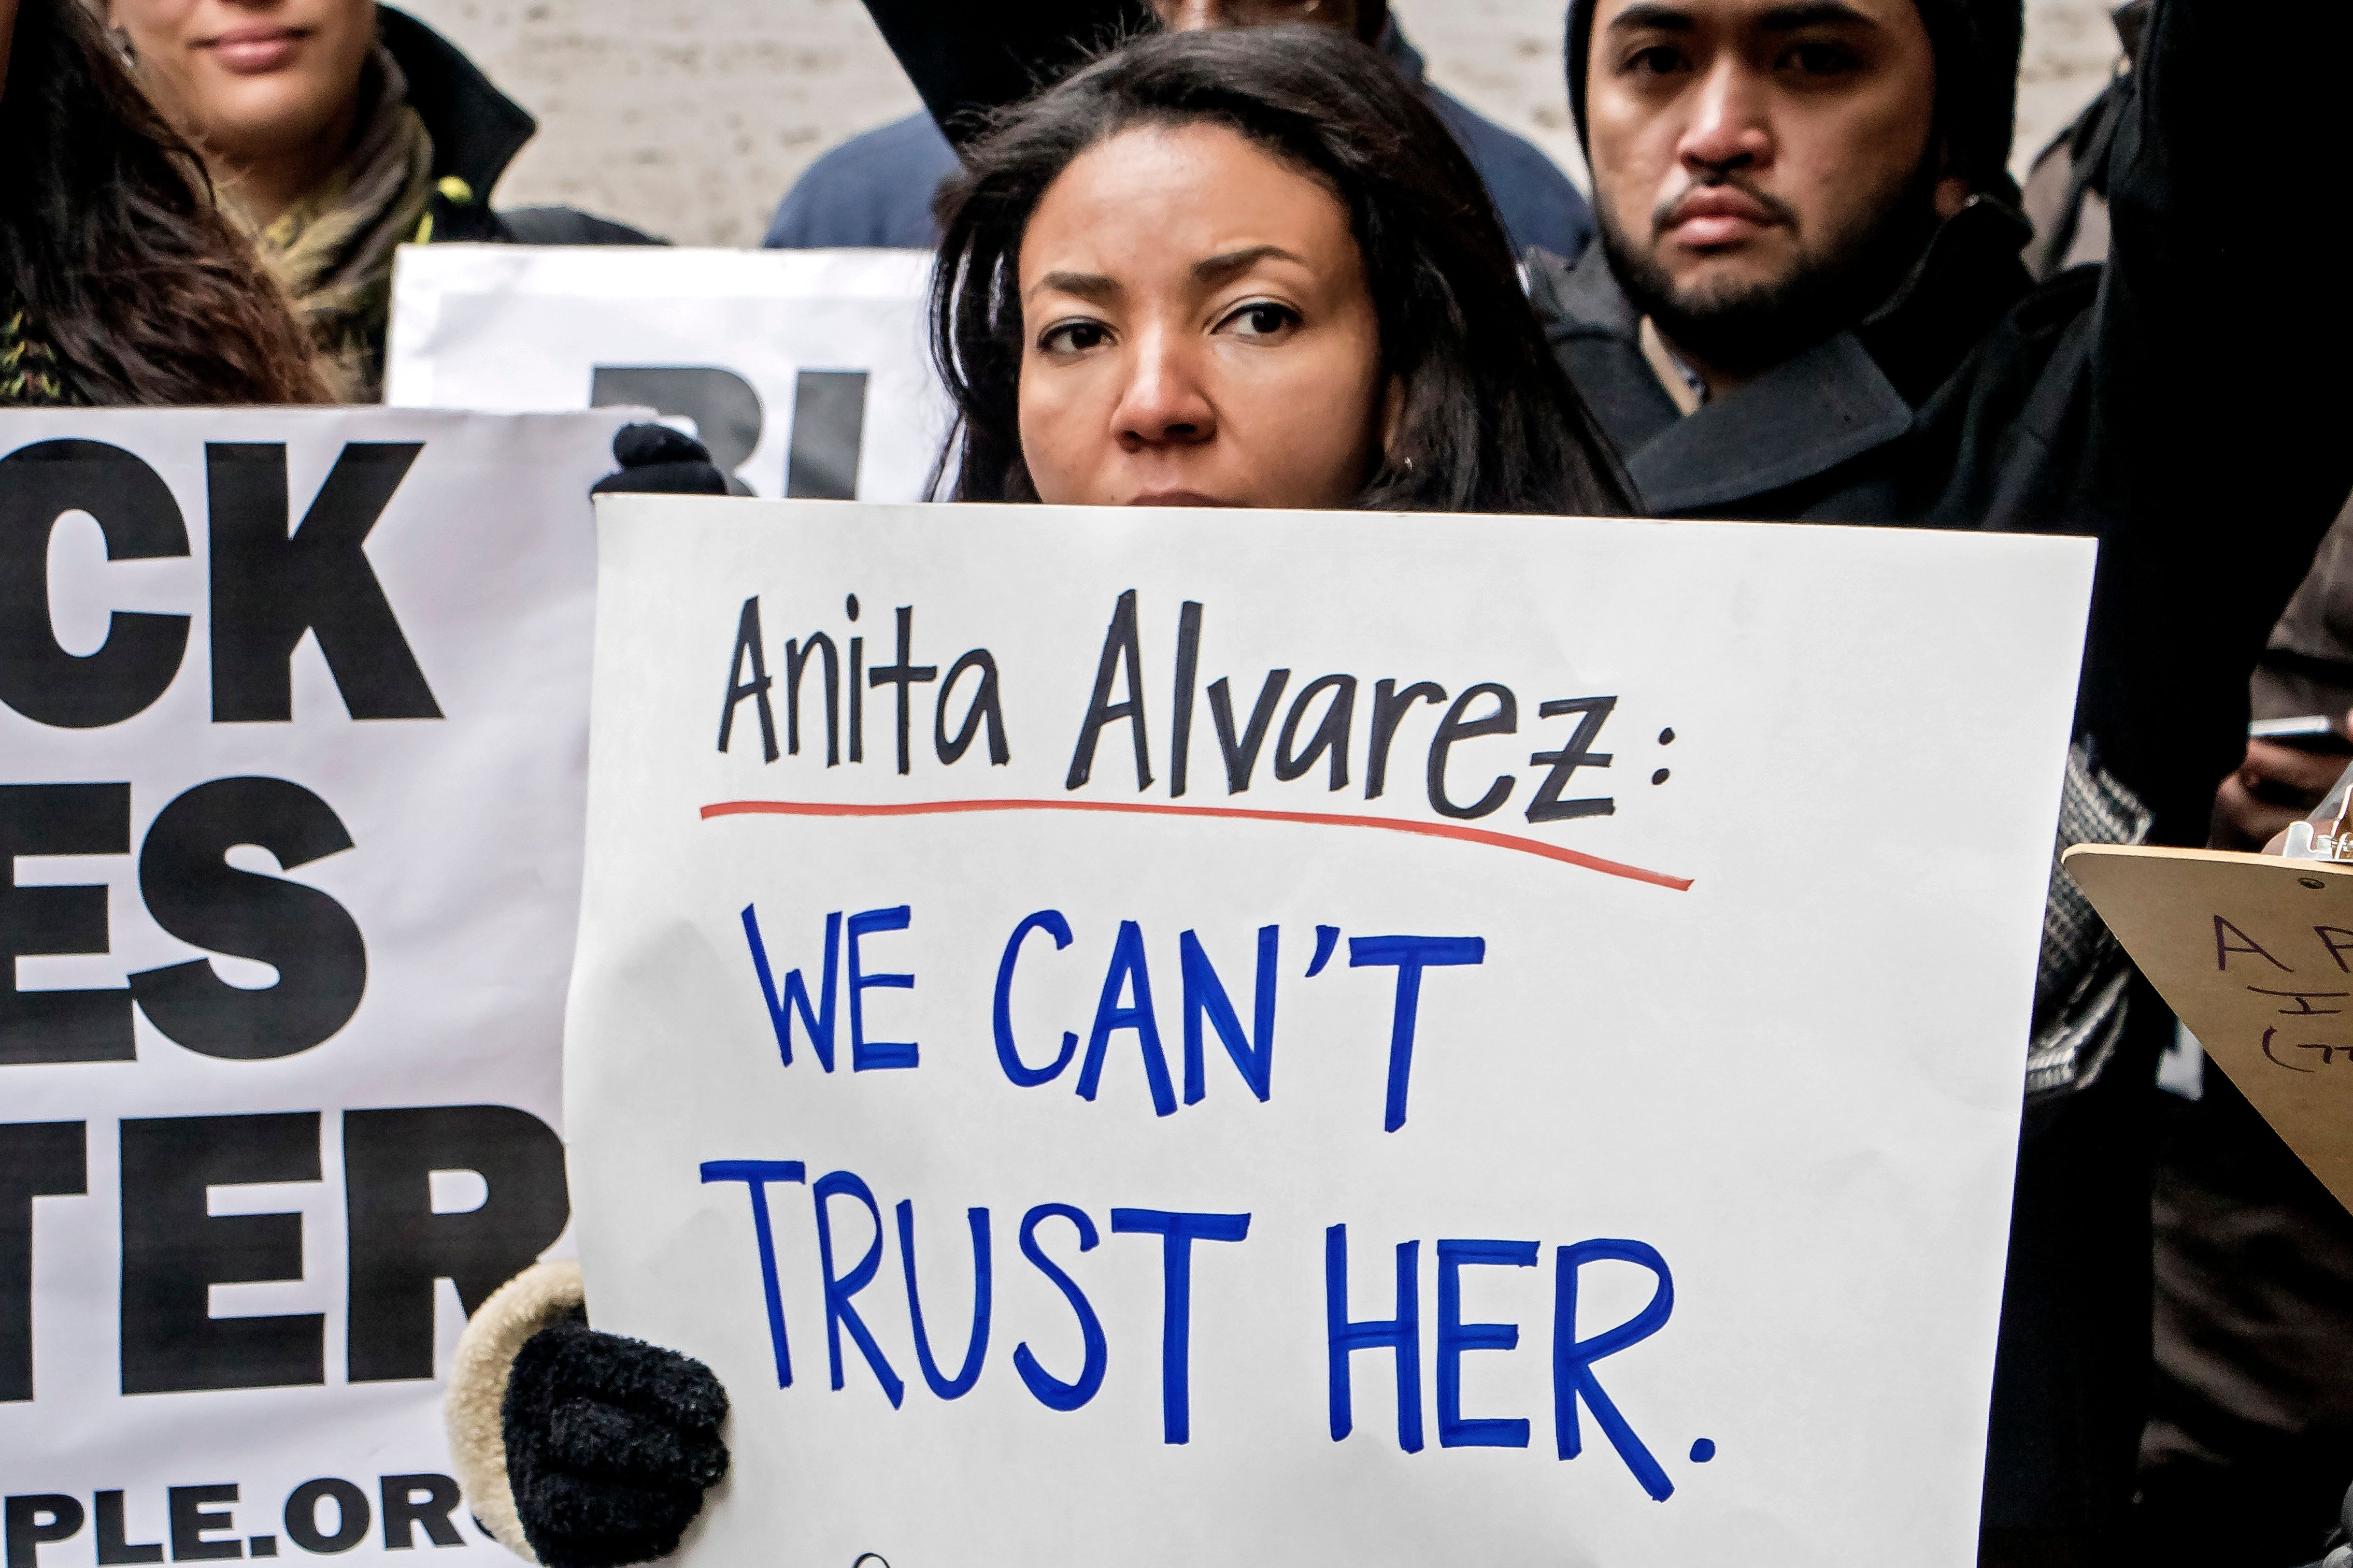 Protesters at a rally in Chicago calling for the removalof Cook County State's Attorney Anita Alvarez.